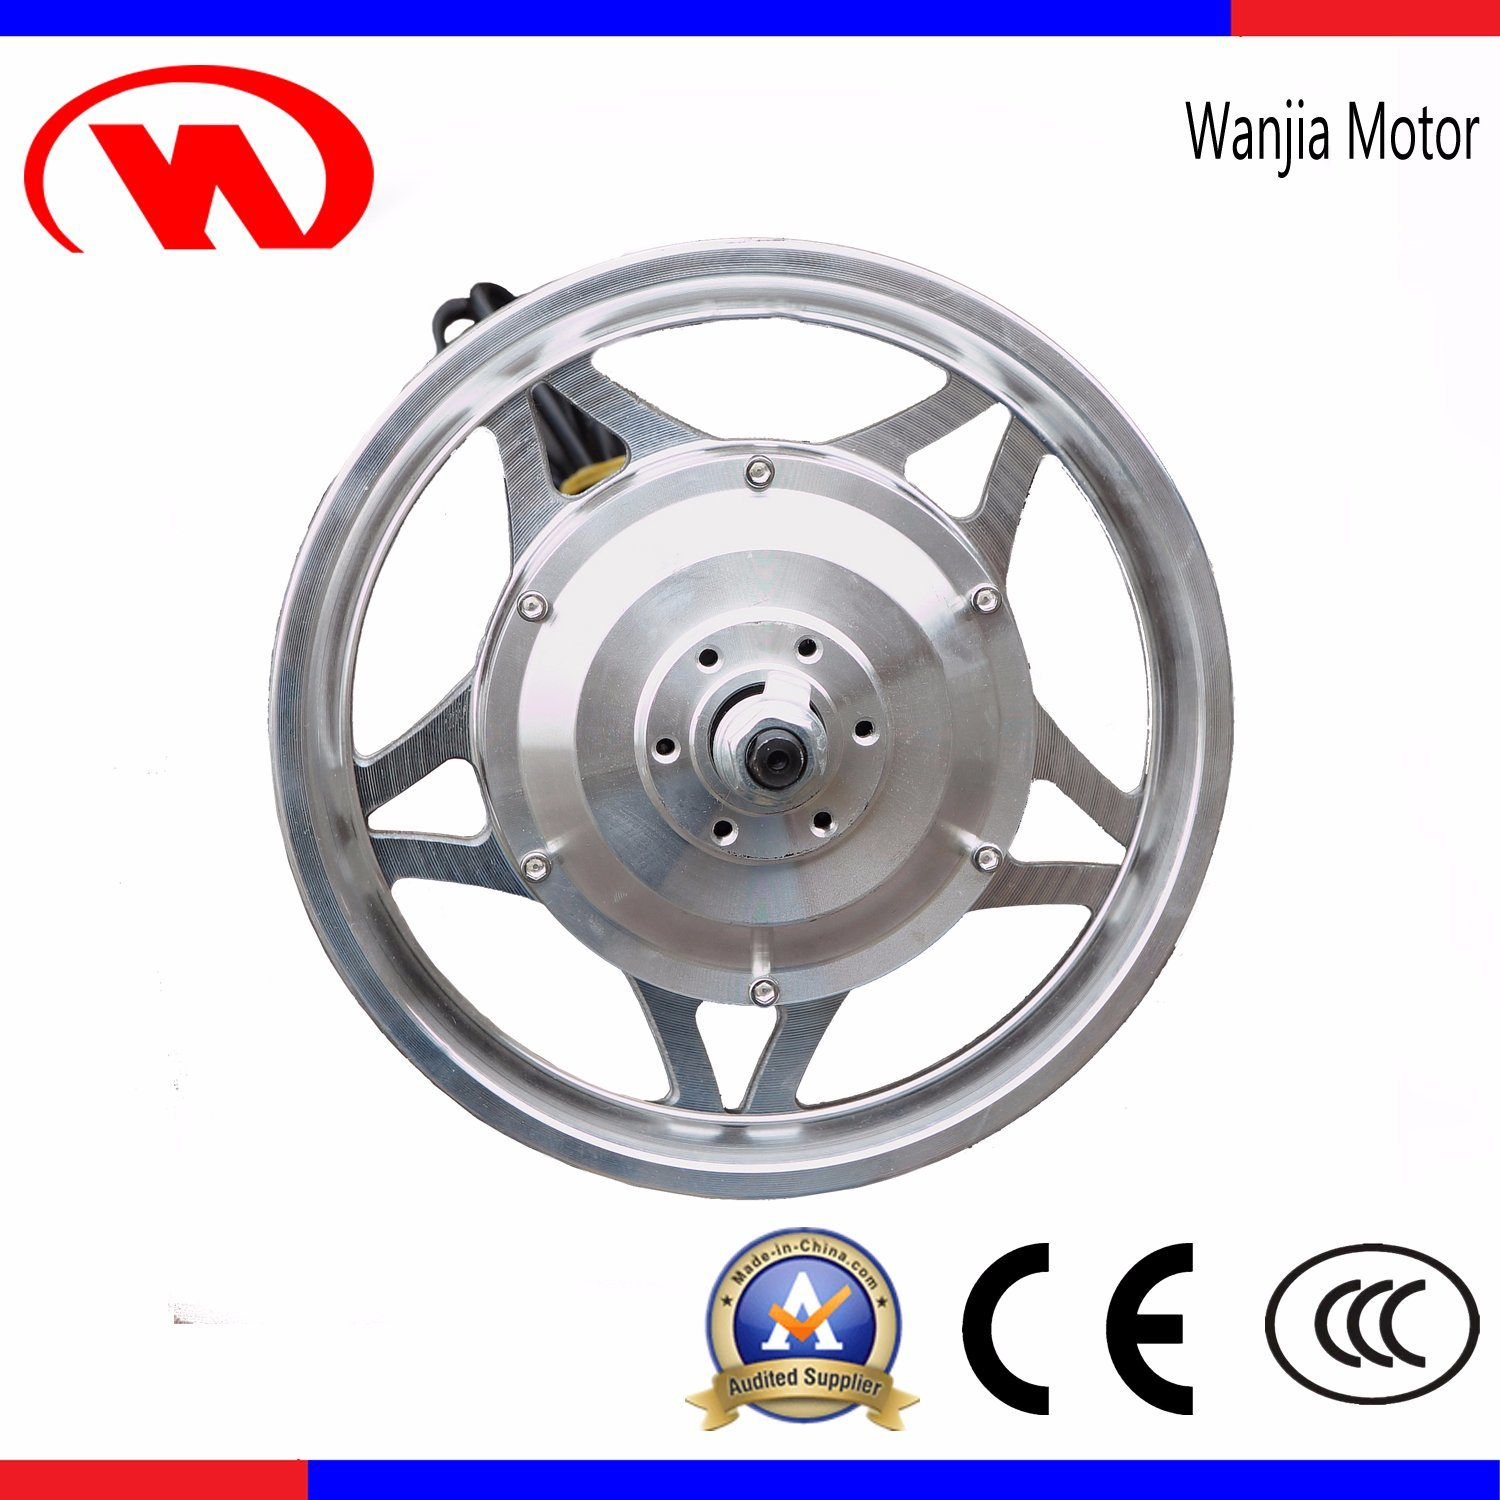 12 Inch Wheel Hub Motor for Electric Bicycle